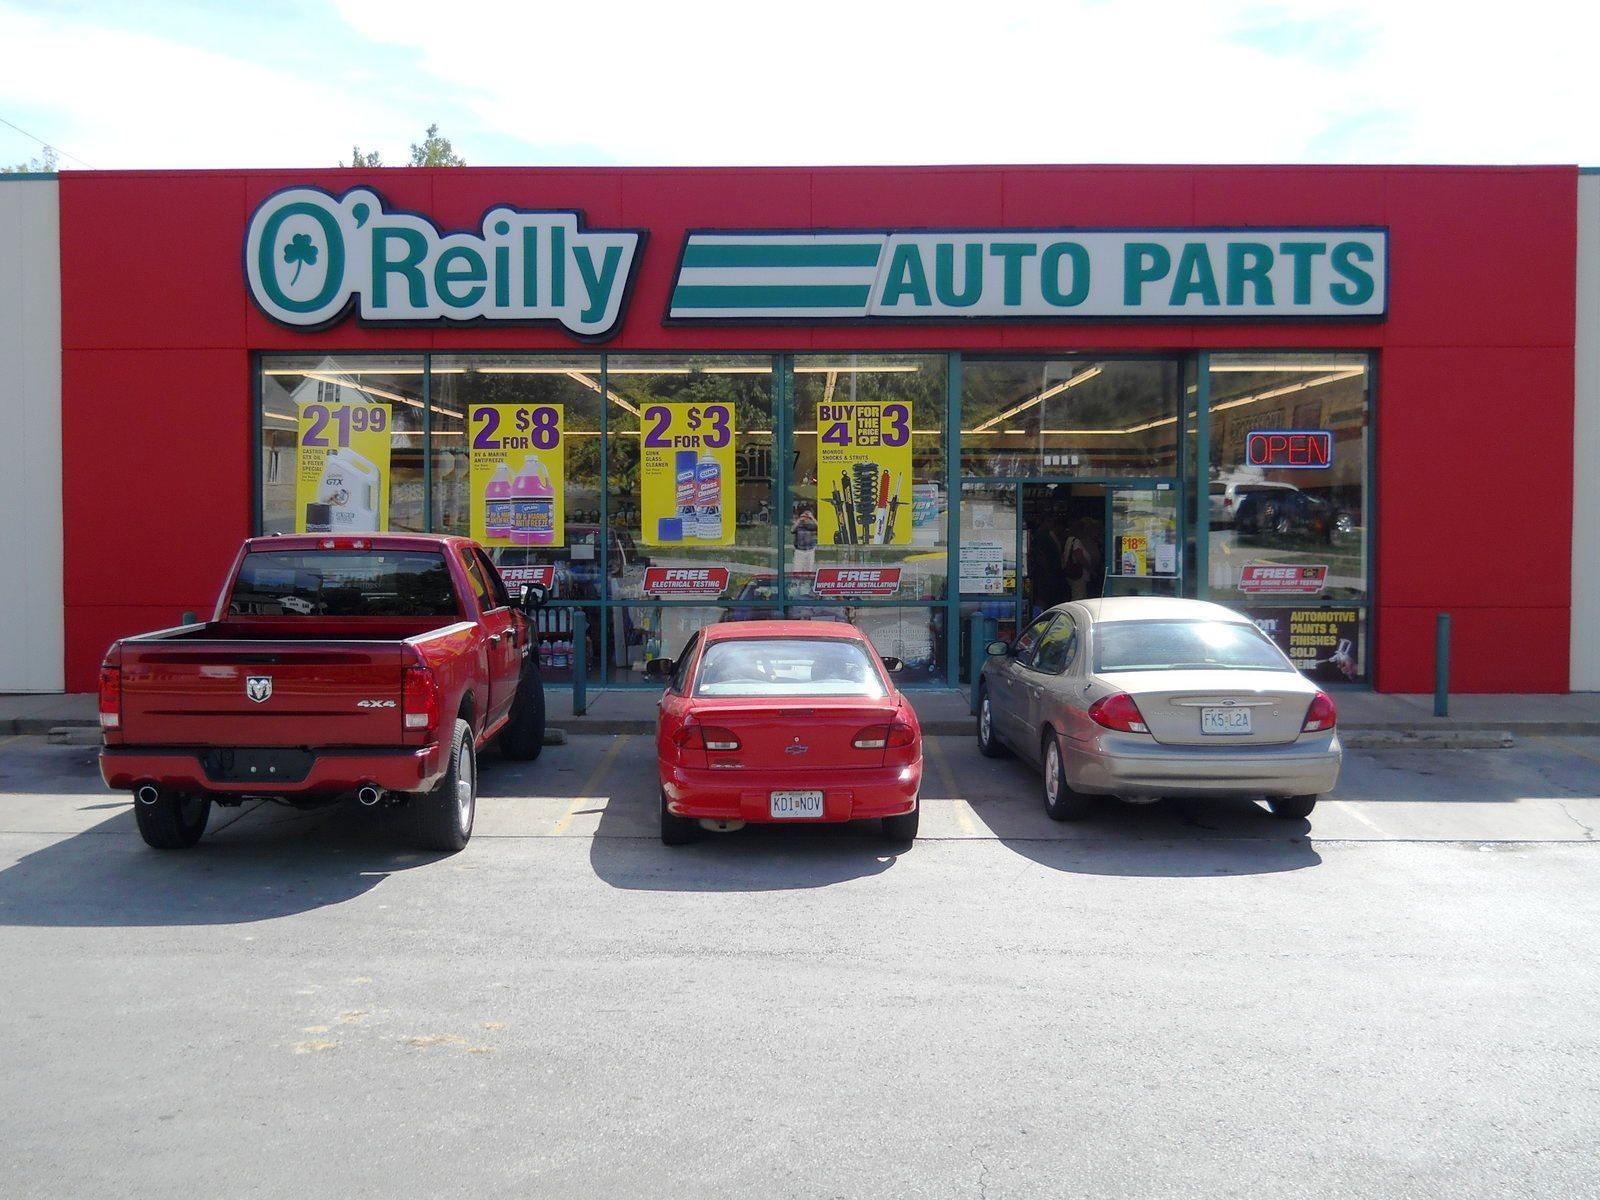 Auto parts in richmond va / Ledgewood farm market